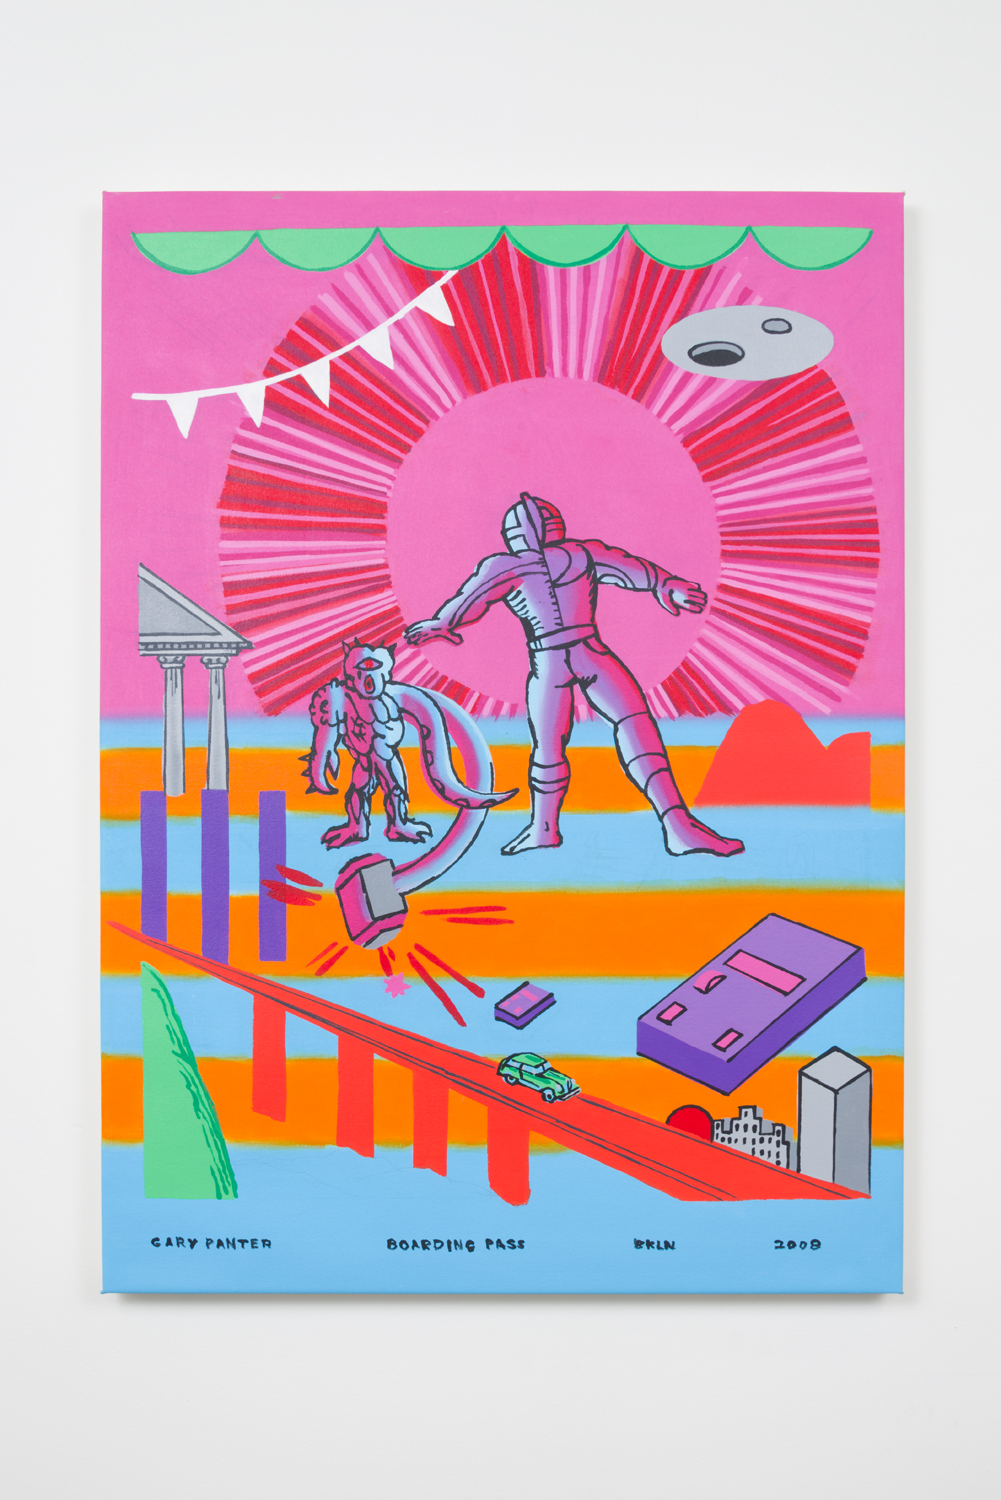 Gary Panter, Boarding Pass, 2008 acrylic on canvas, 48.5 x 35.5 inches